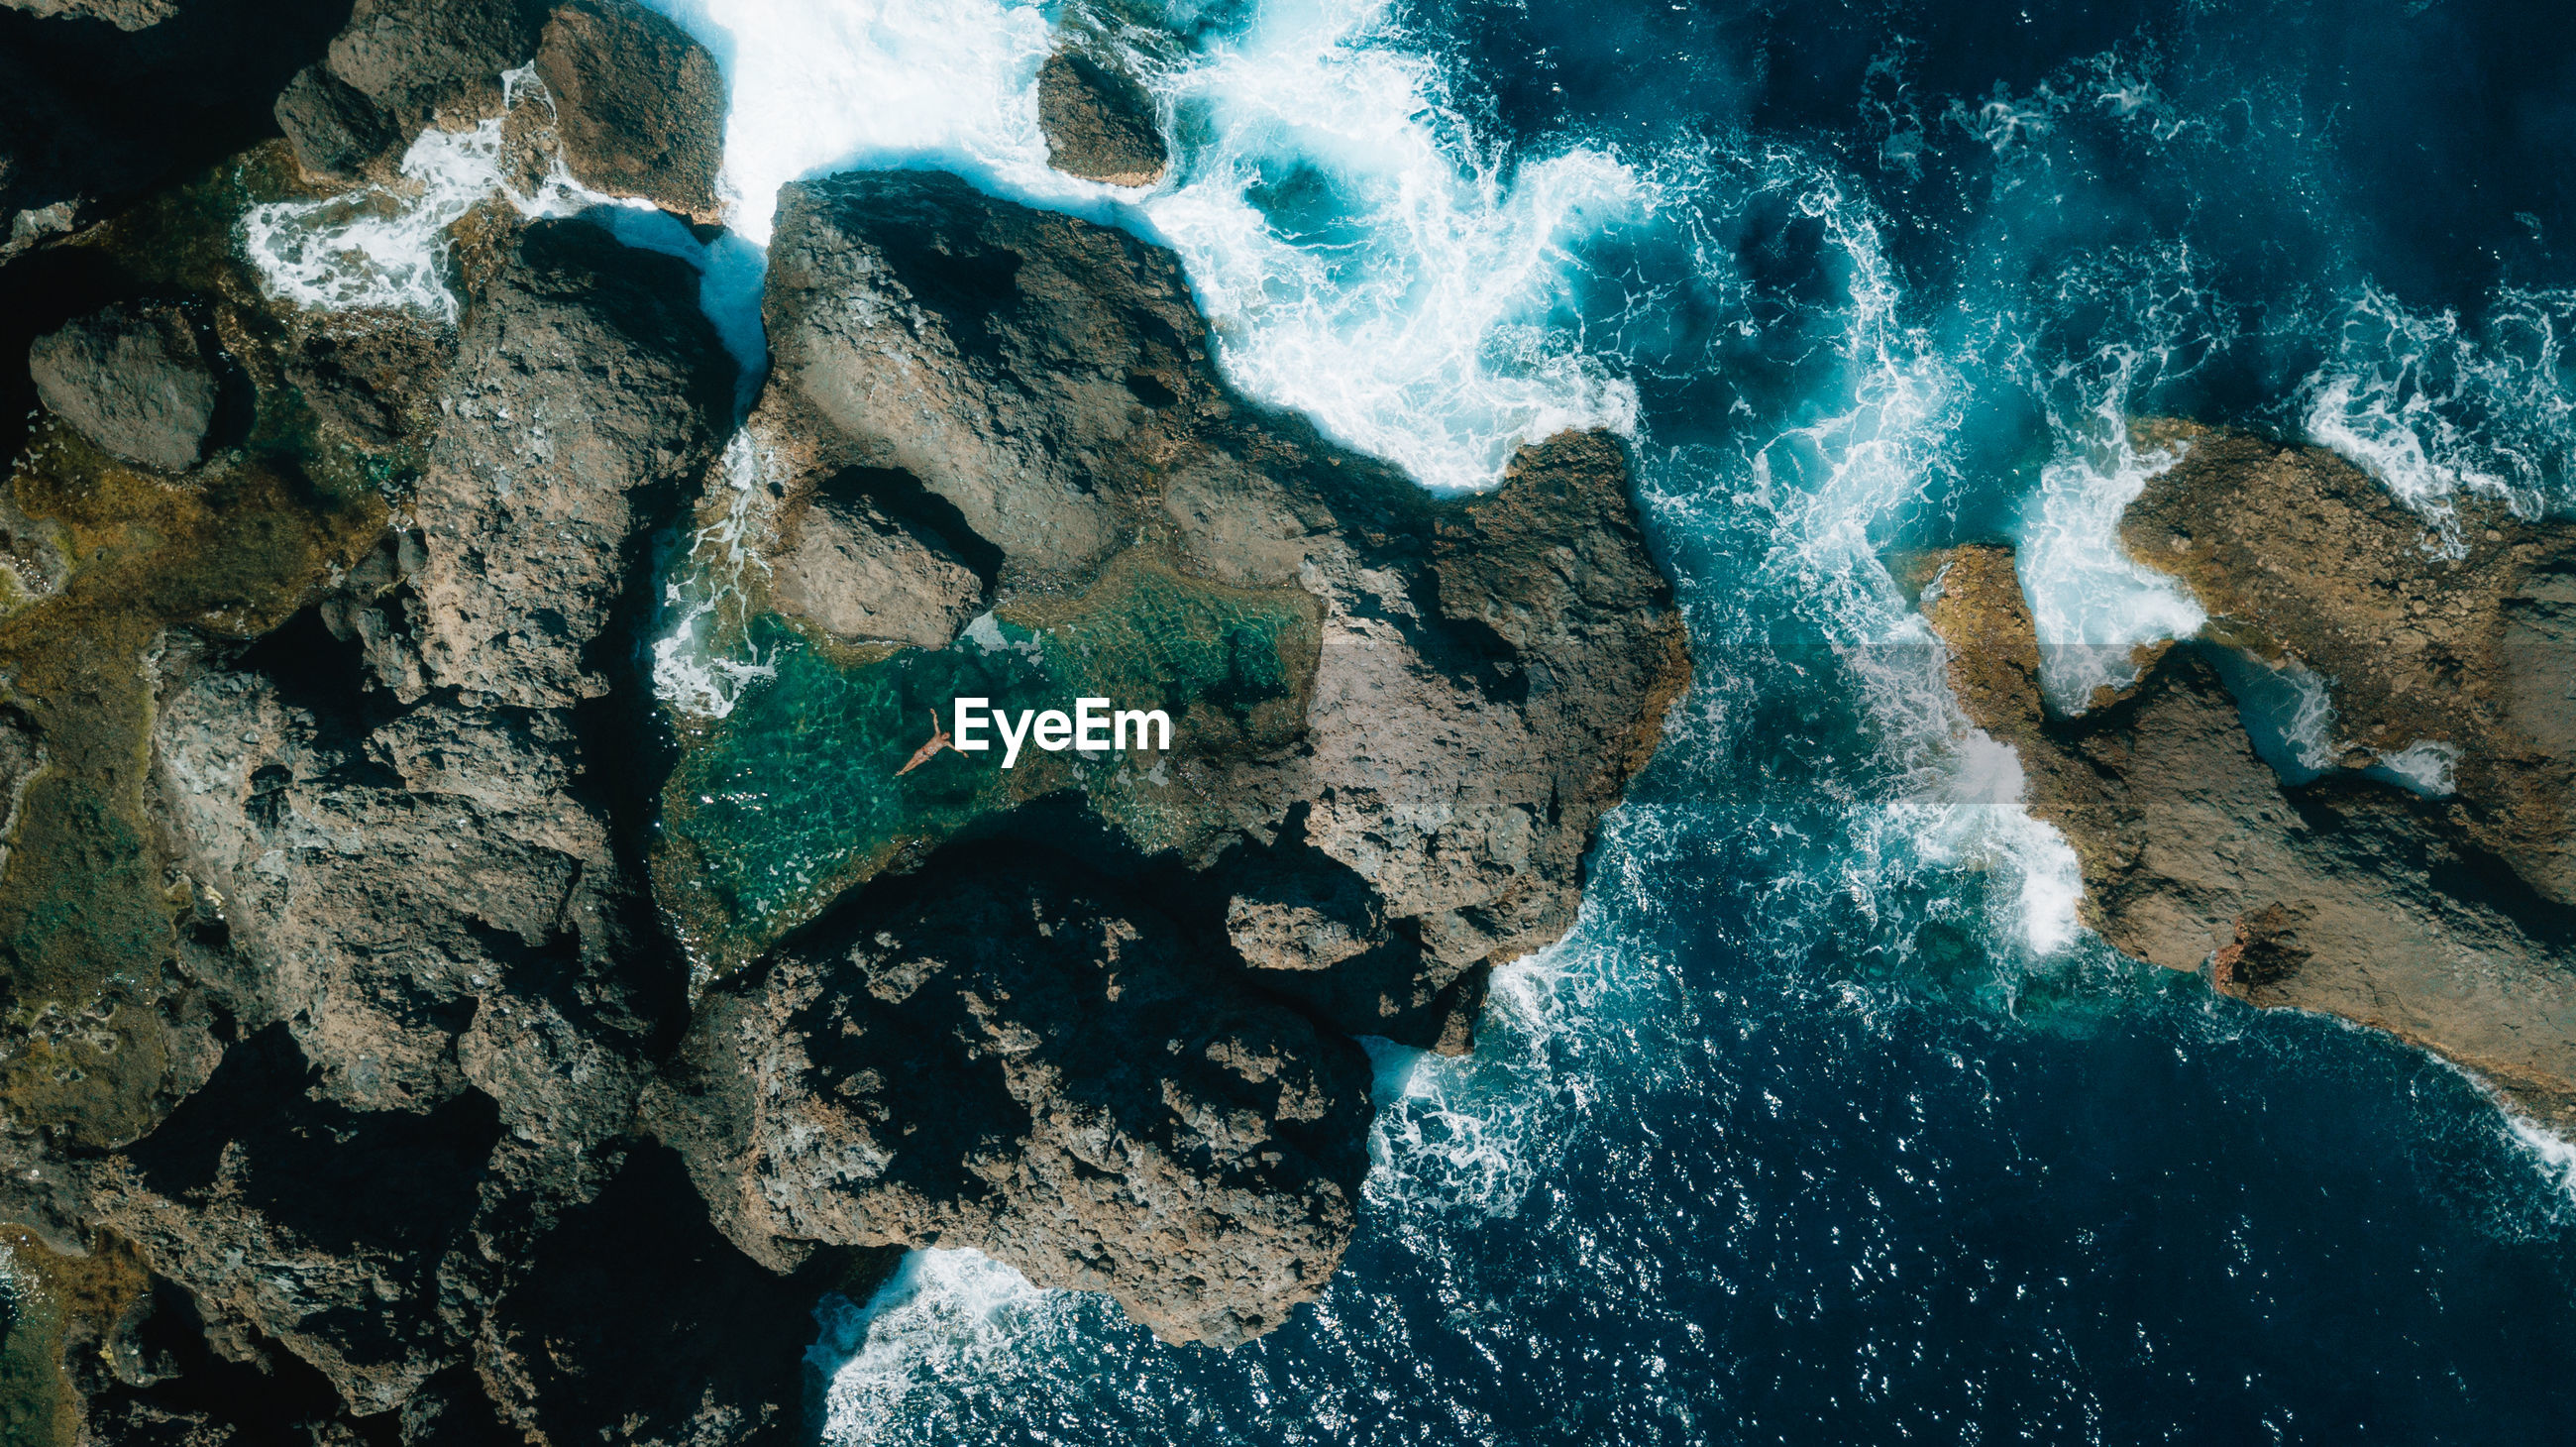 Aerial view of woman swimming in water amidst rock formation in sea